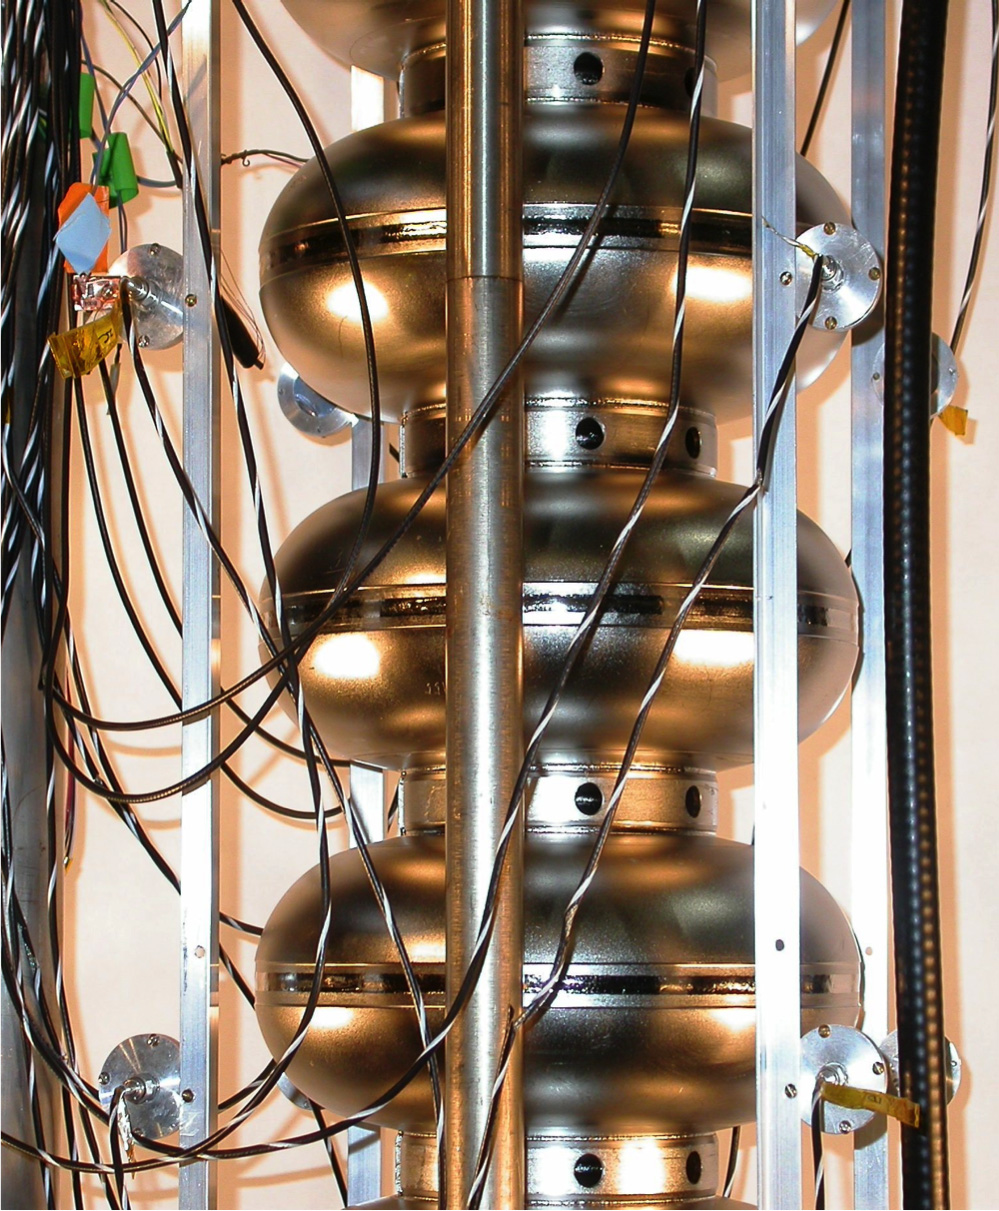 An ILC-type cavity soon to be tested for defects using second-sound detection. The sensors, oscillating super-leak transducers, are the small metal discs connected to cables. Image: Zach Conway.